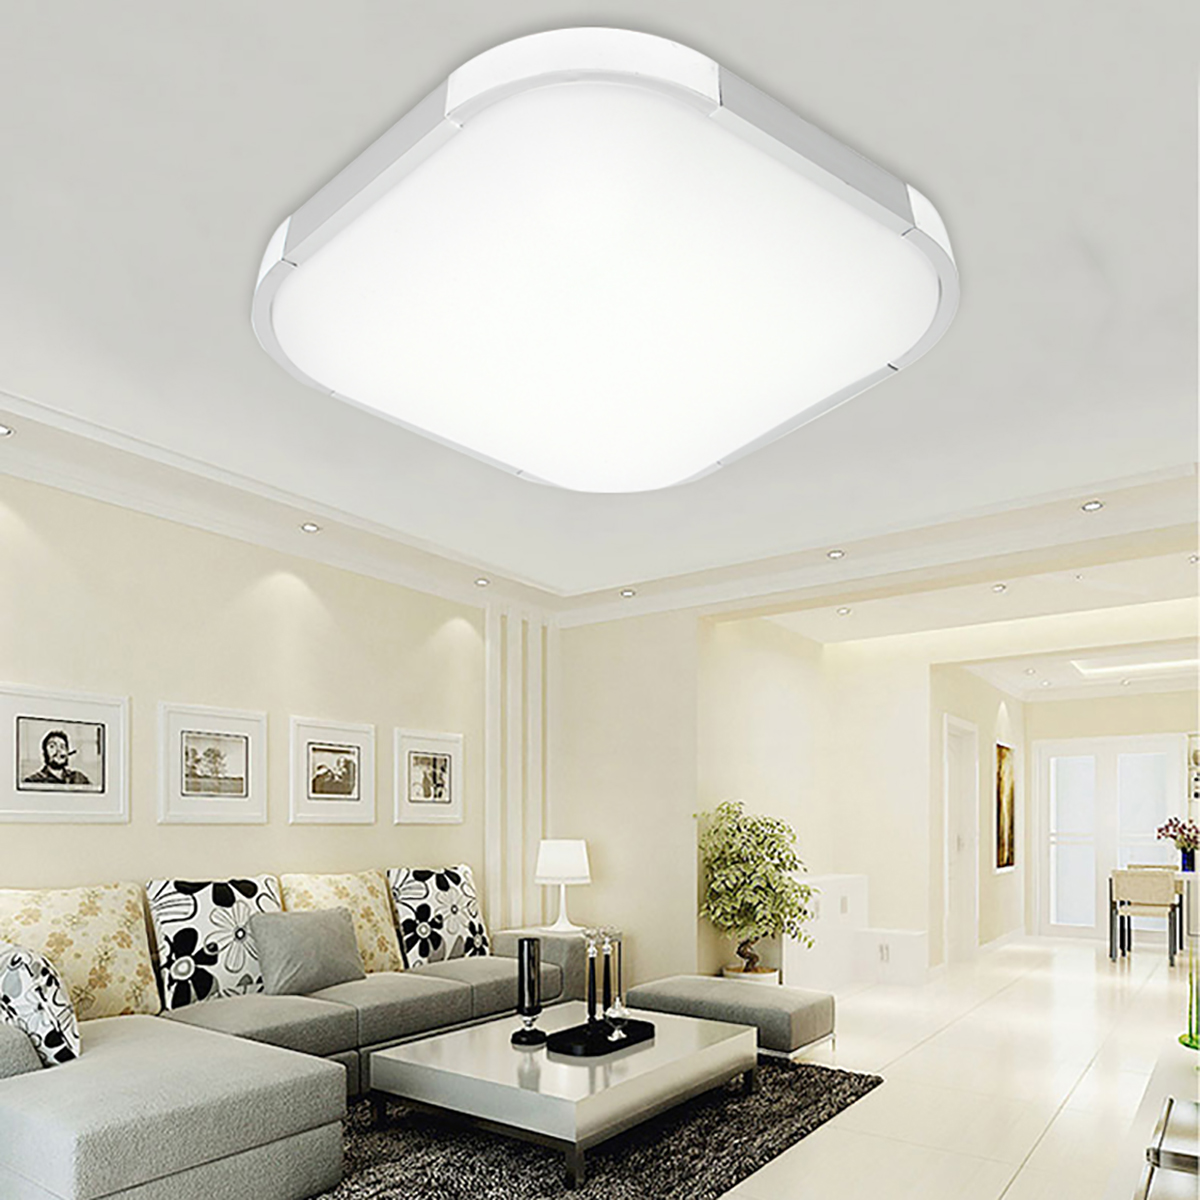 Led dome light night light 12w 18w 24w ceiling lamp universal for led dome light night light 12w 18w 24w ceiling lamp universal for bedroom living room home indoor lighting modern square decor in ceiling lights from lights arubaitofo Images